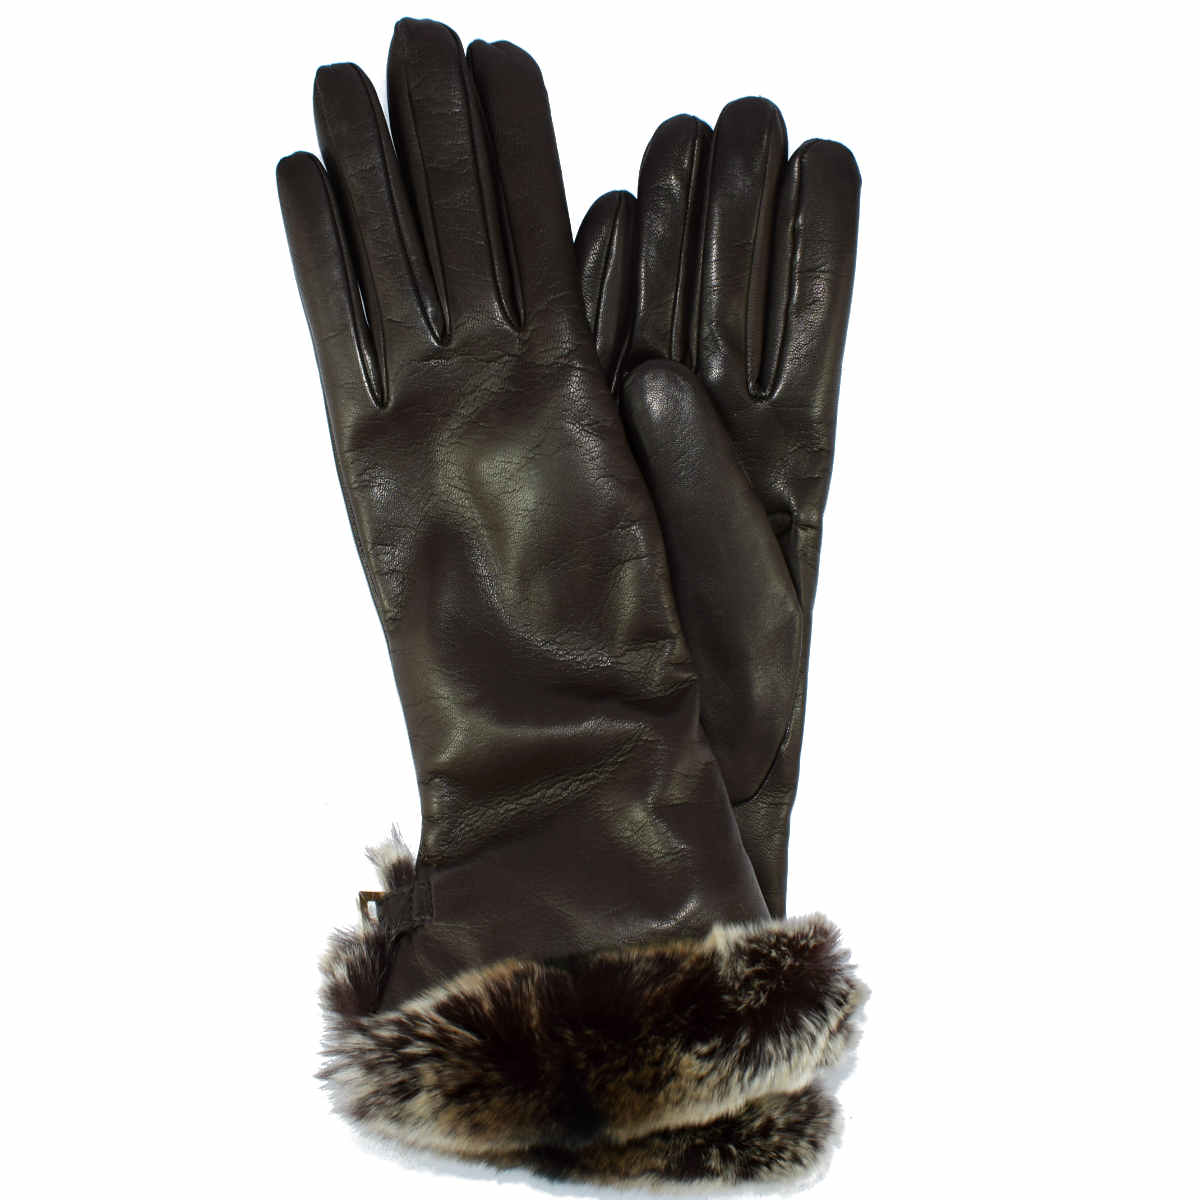 5E74 FUR GLOVE AND WRIST LACE by Bottega Fiorentina